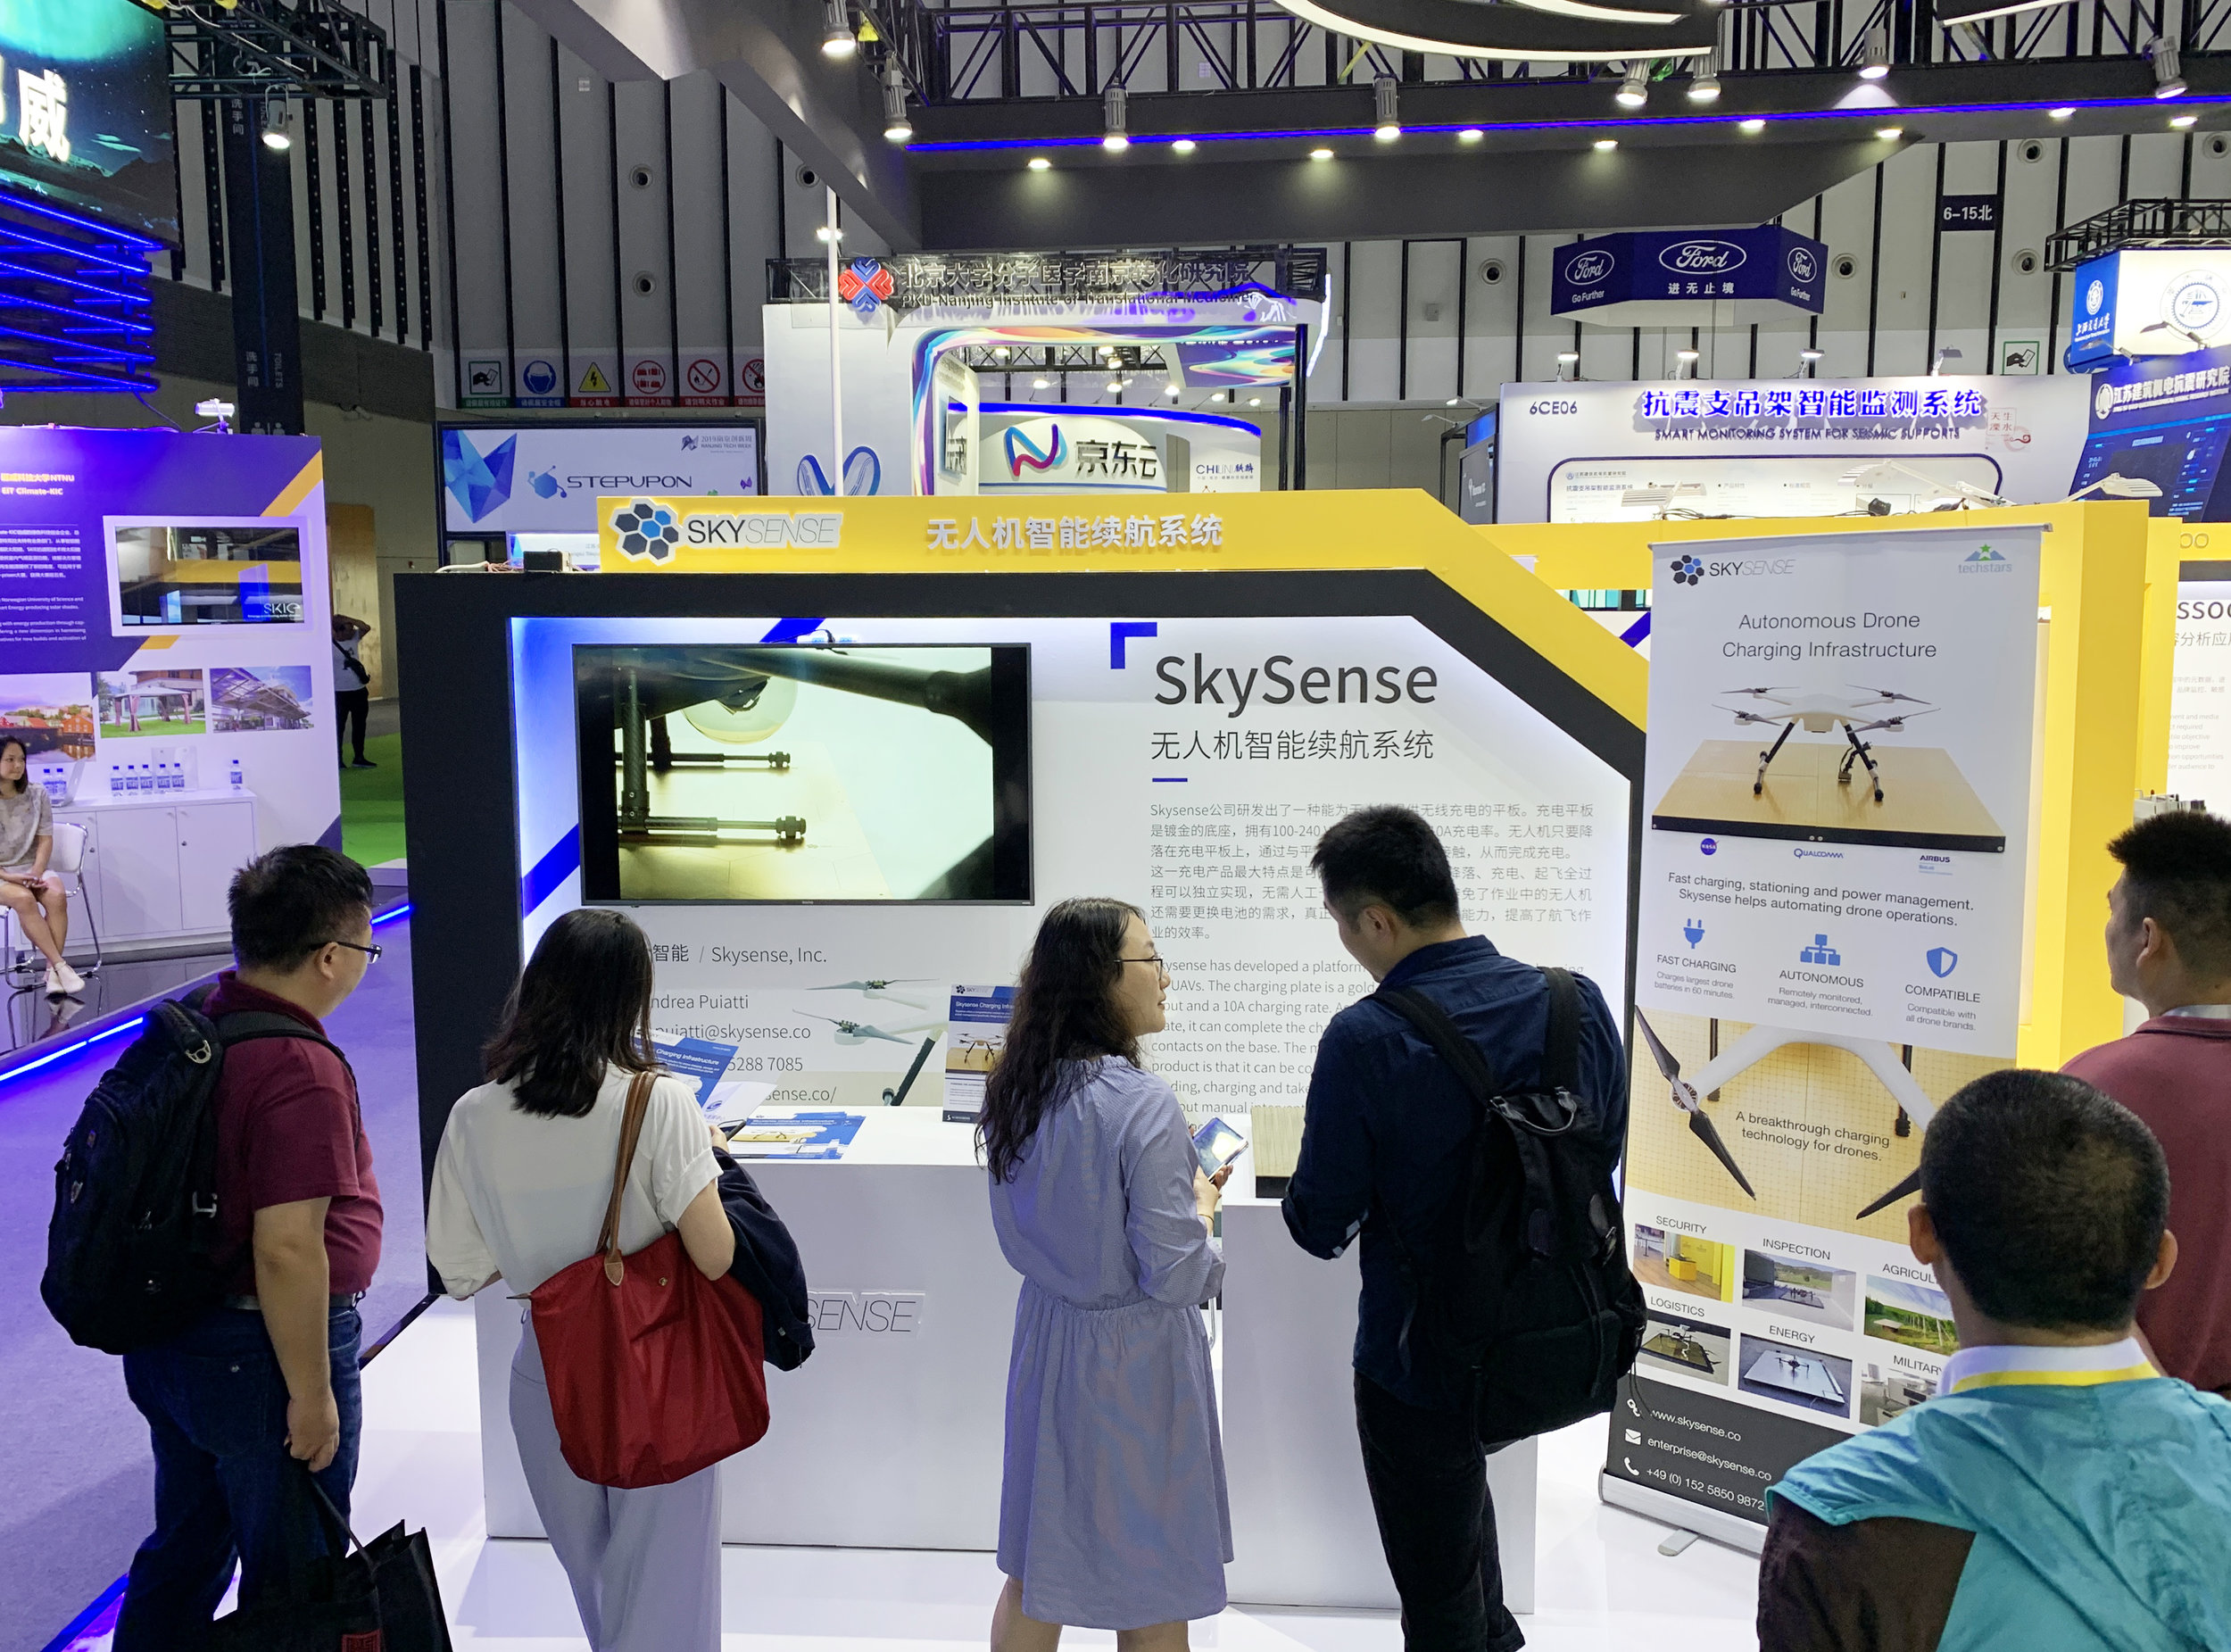 Skysense at Nanjing Tech Week